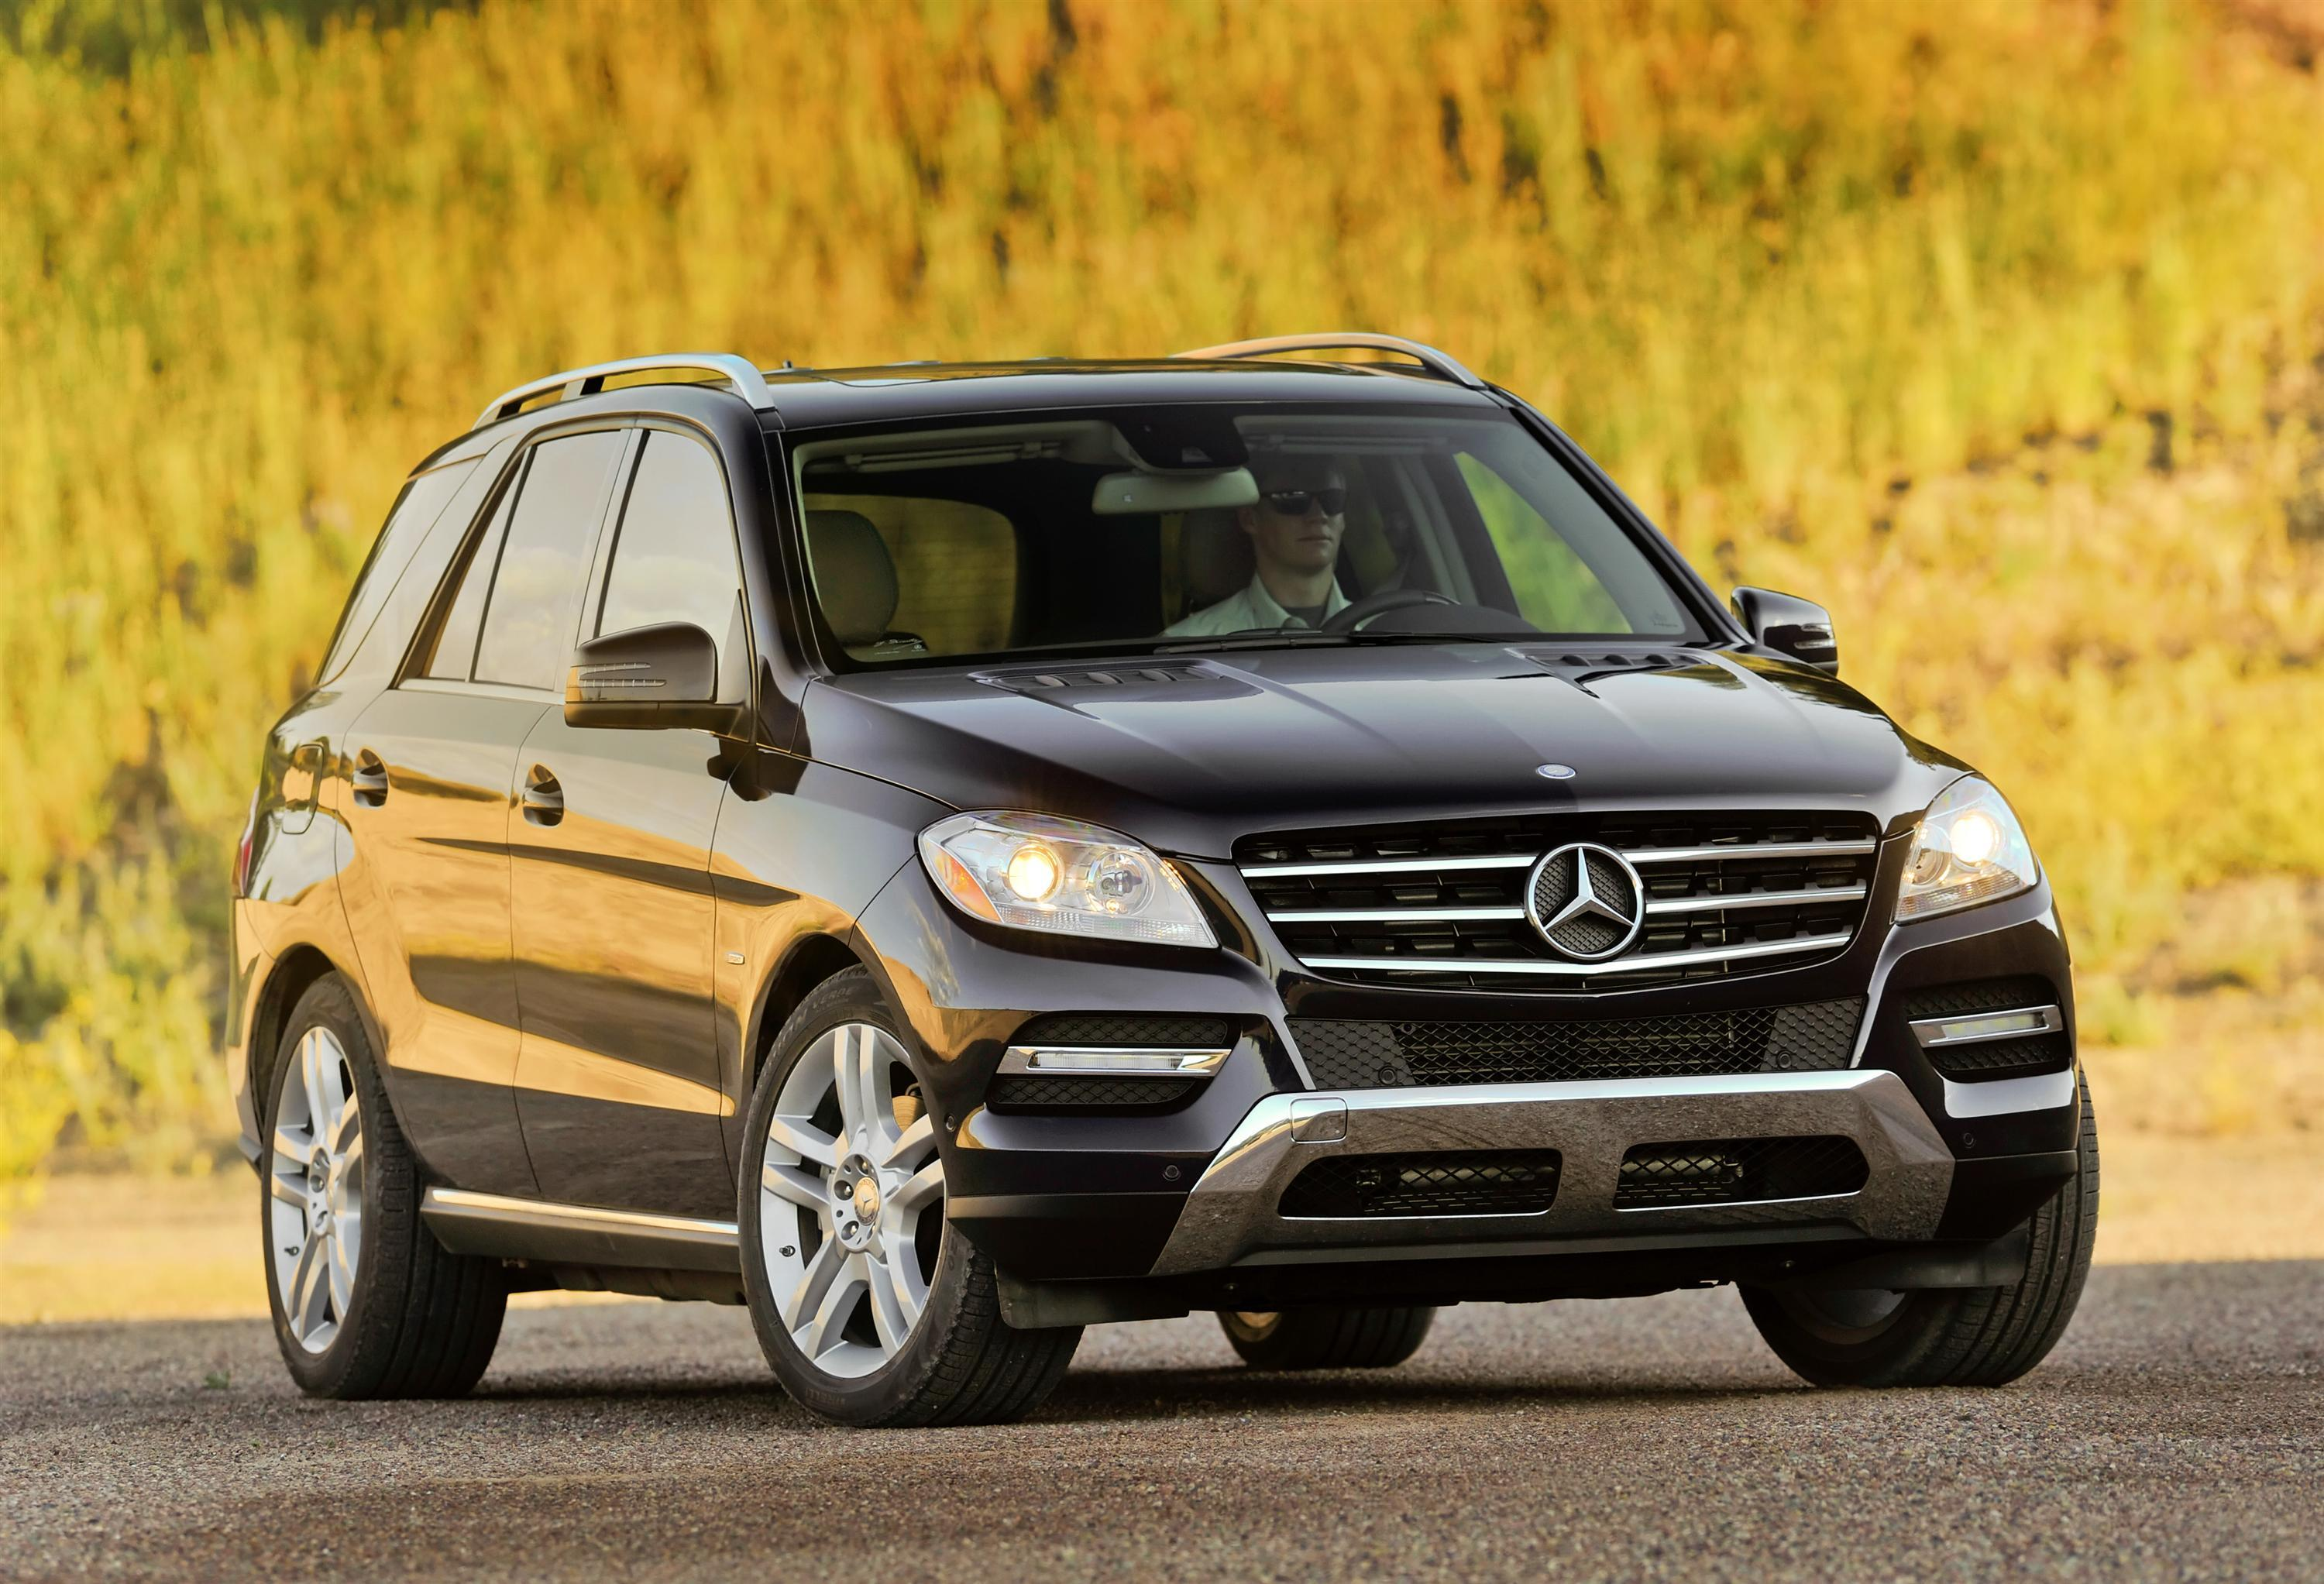 2012 mercedes benz m class has bolder design mercedes for Mercedes benz ml350 bluetec